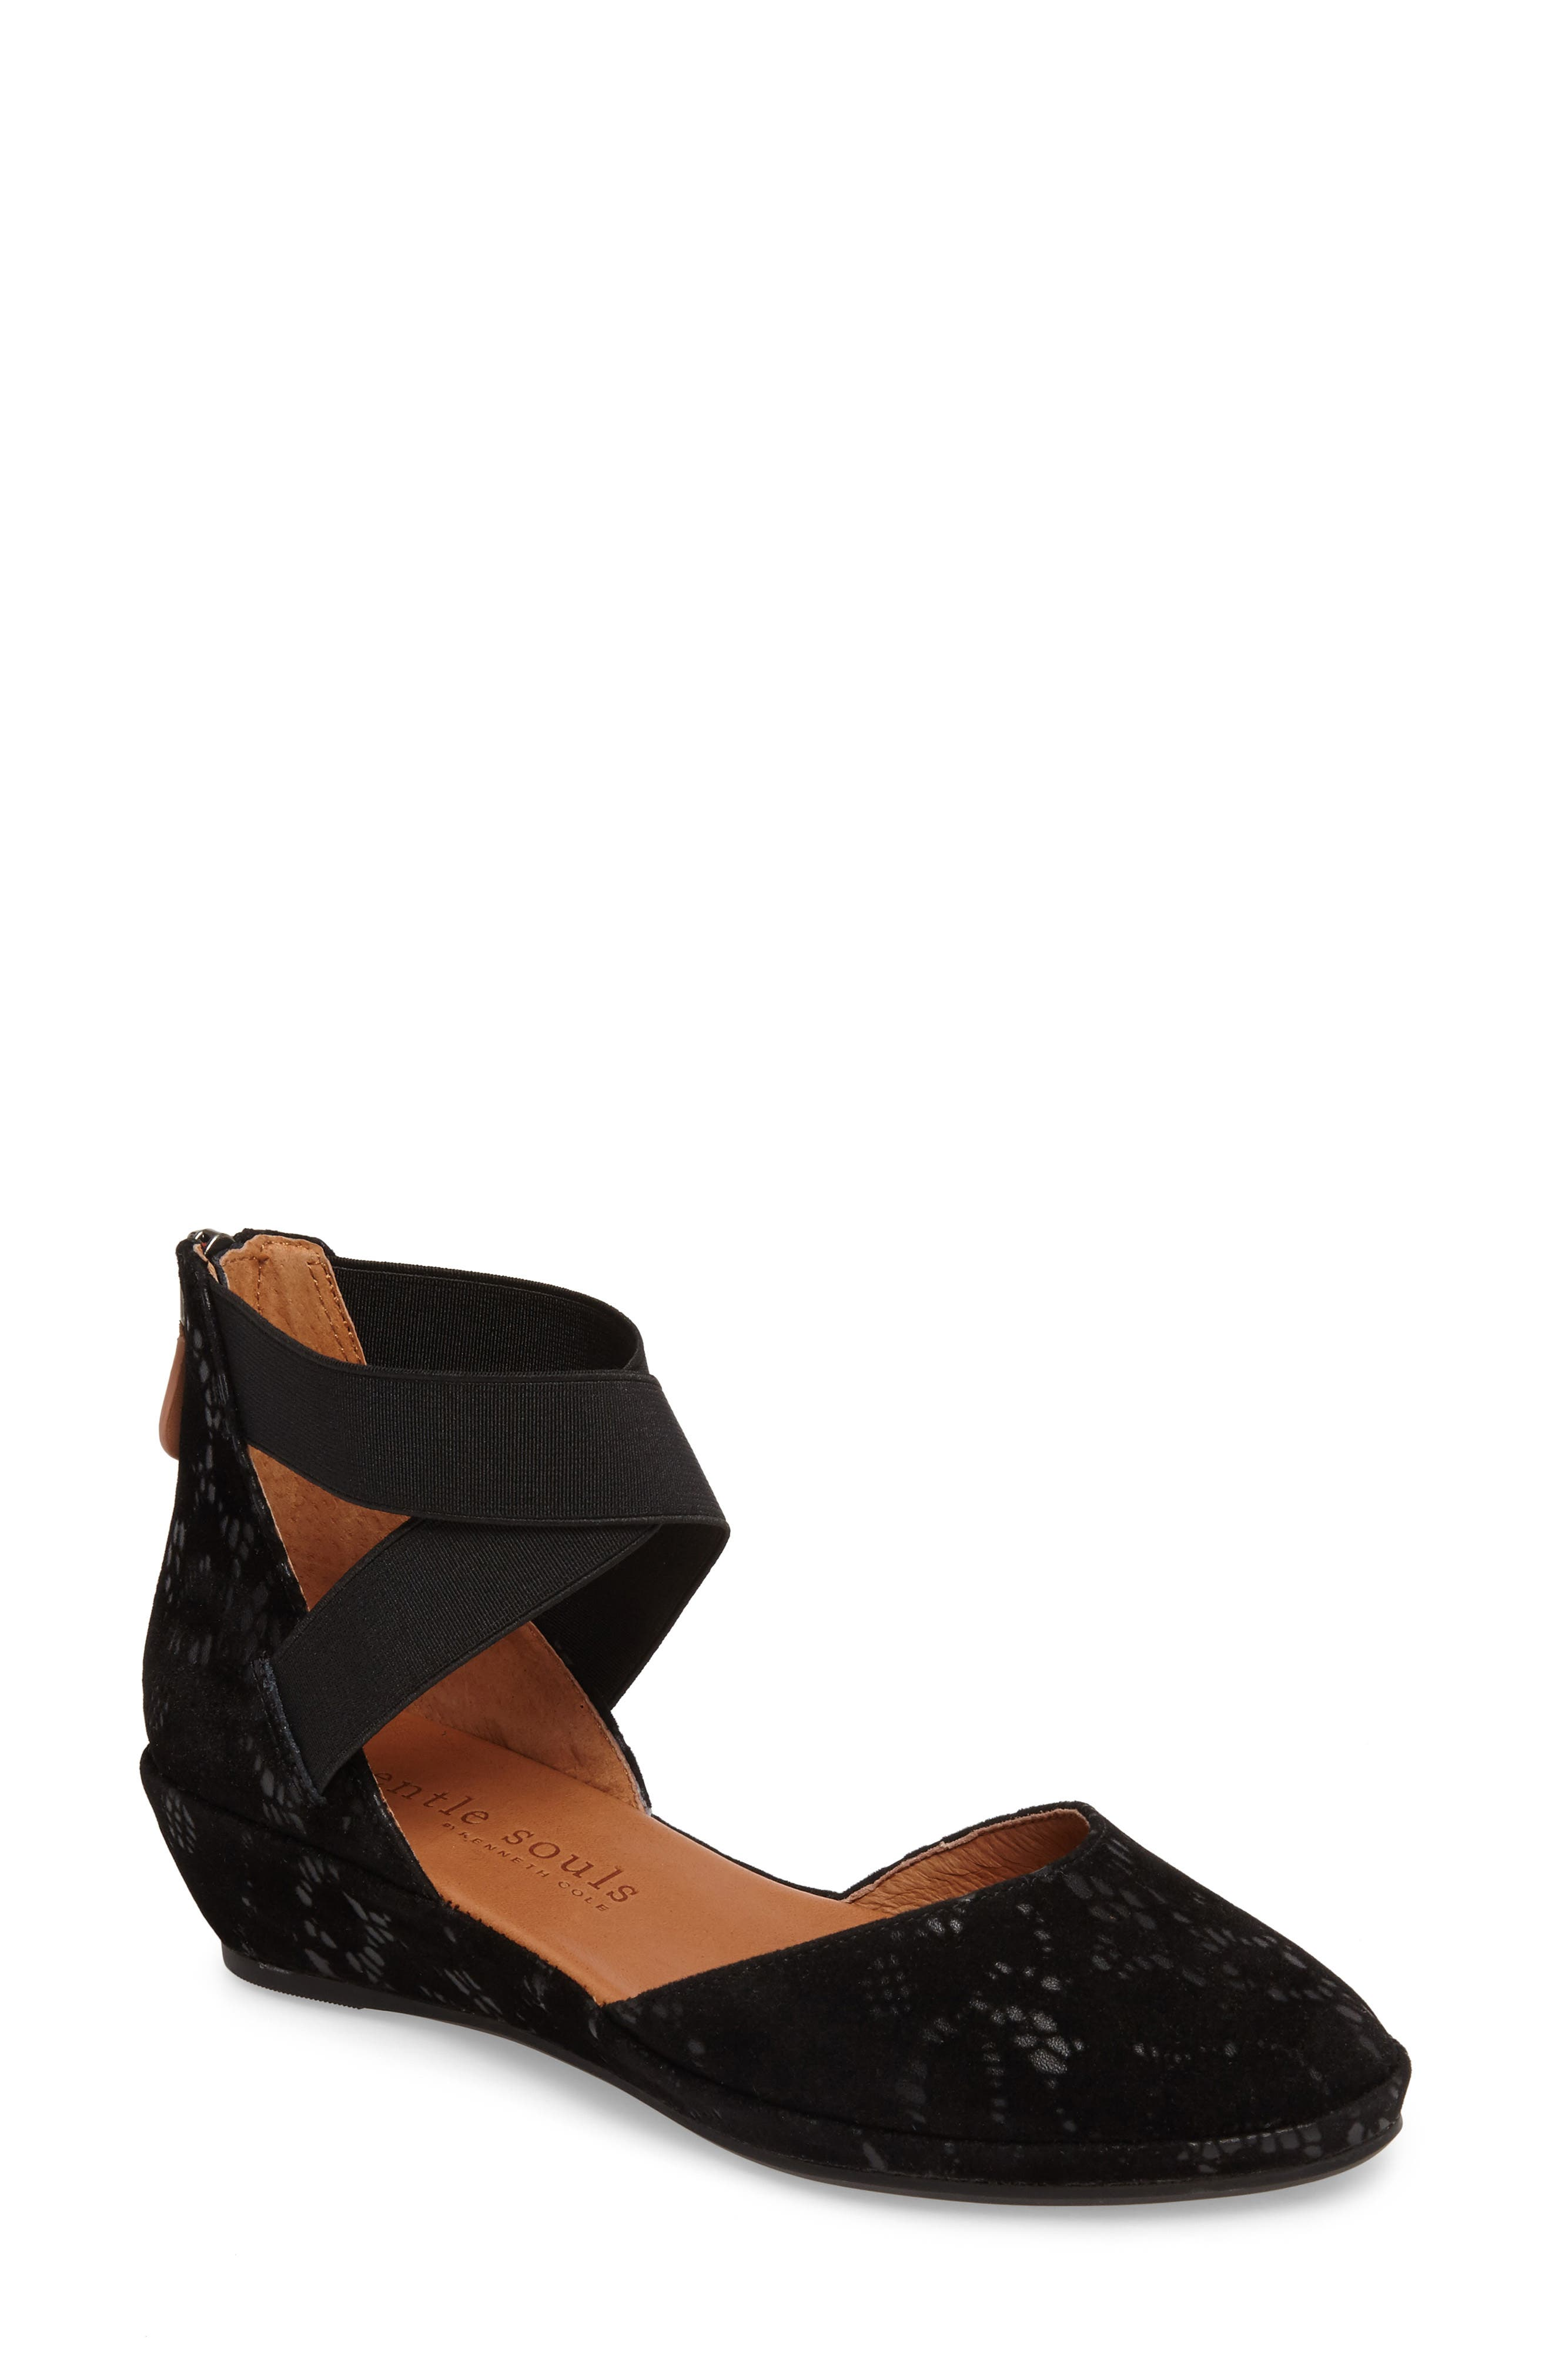 Gentle Souls Noa Cross Strap Wedge (Women)